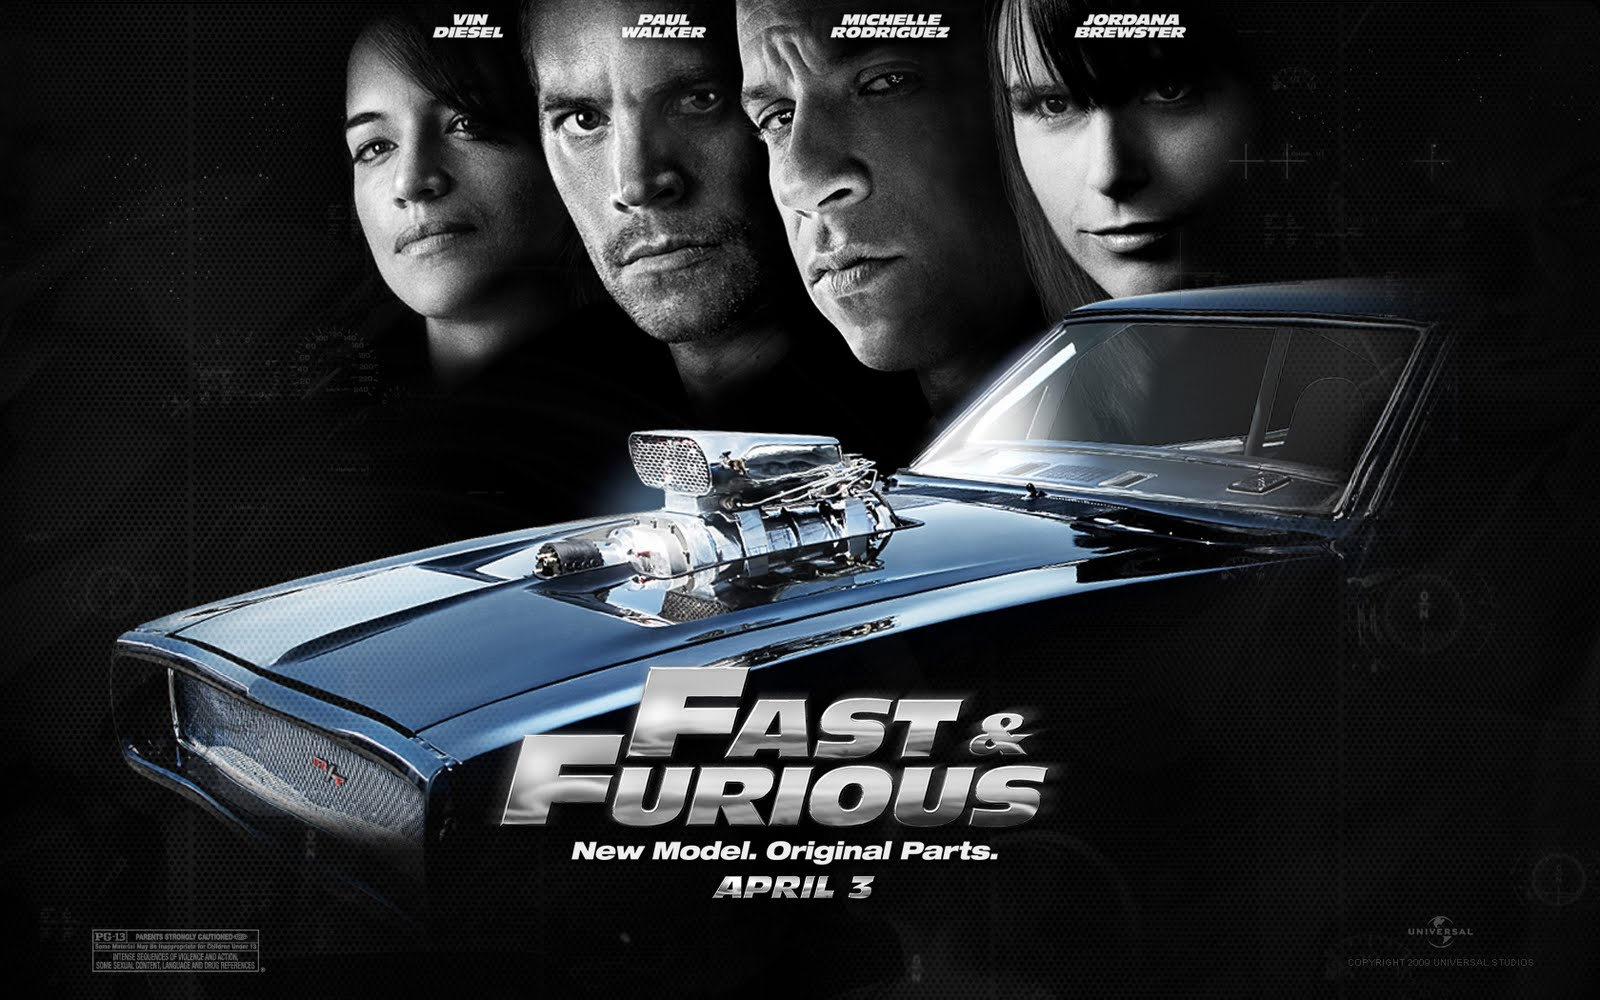 http://1.bp.blogspot.com/_2g4TpSCJsCA/THAuDZ9Vg5I/AAAAAAAAABM/zO-v6b5TuHM/s1600/Vin_Diesel_in_The_Fast_and_the_Furious_4_Wallpaper_1_1024.jpg